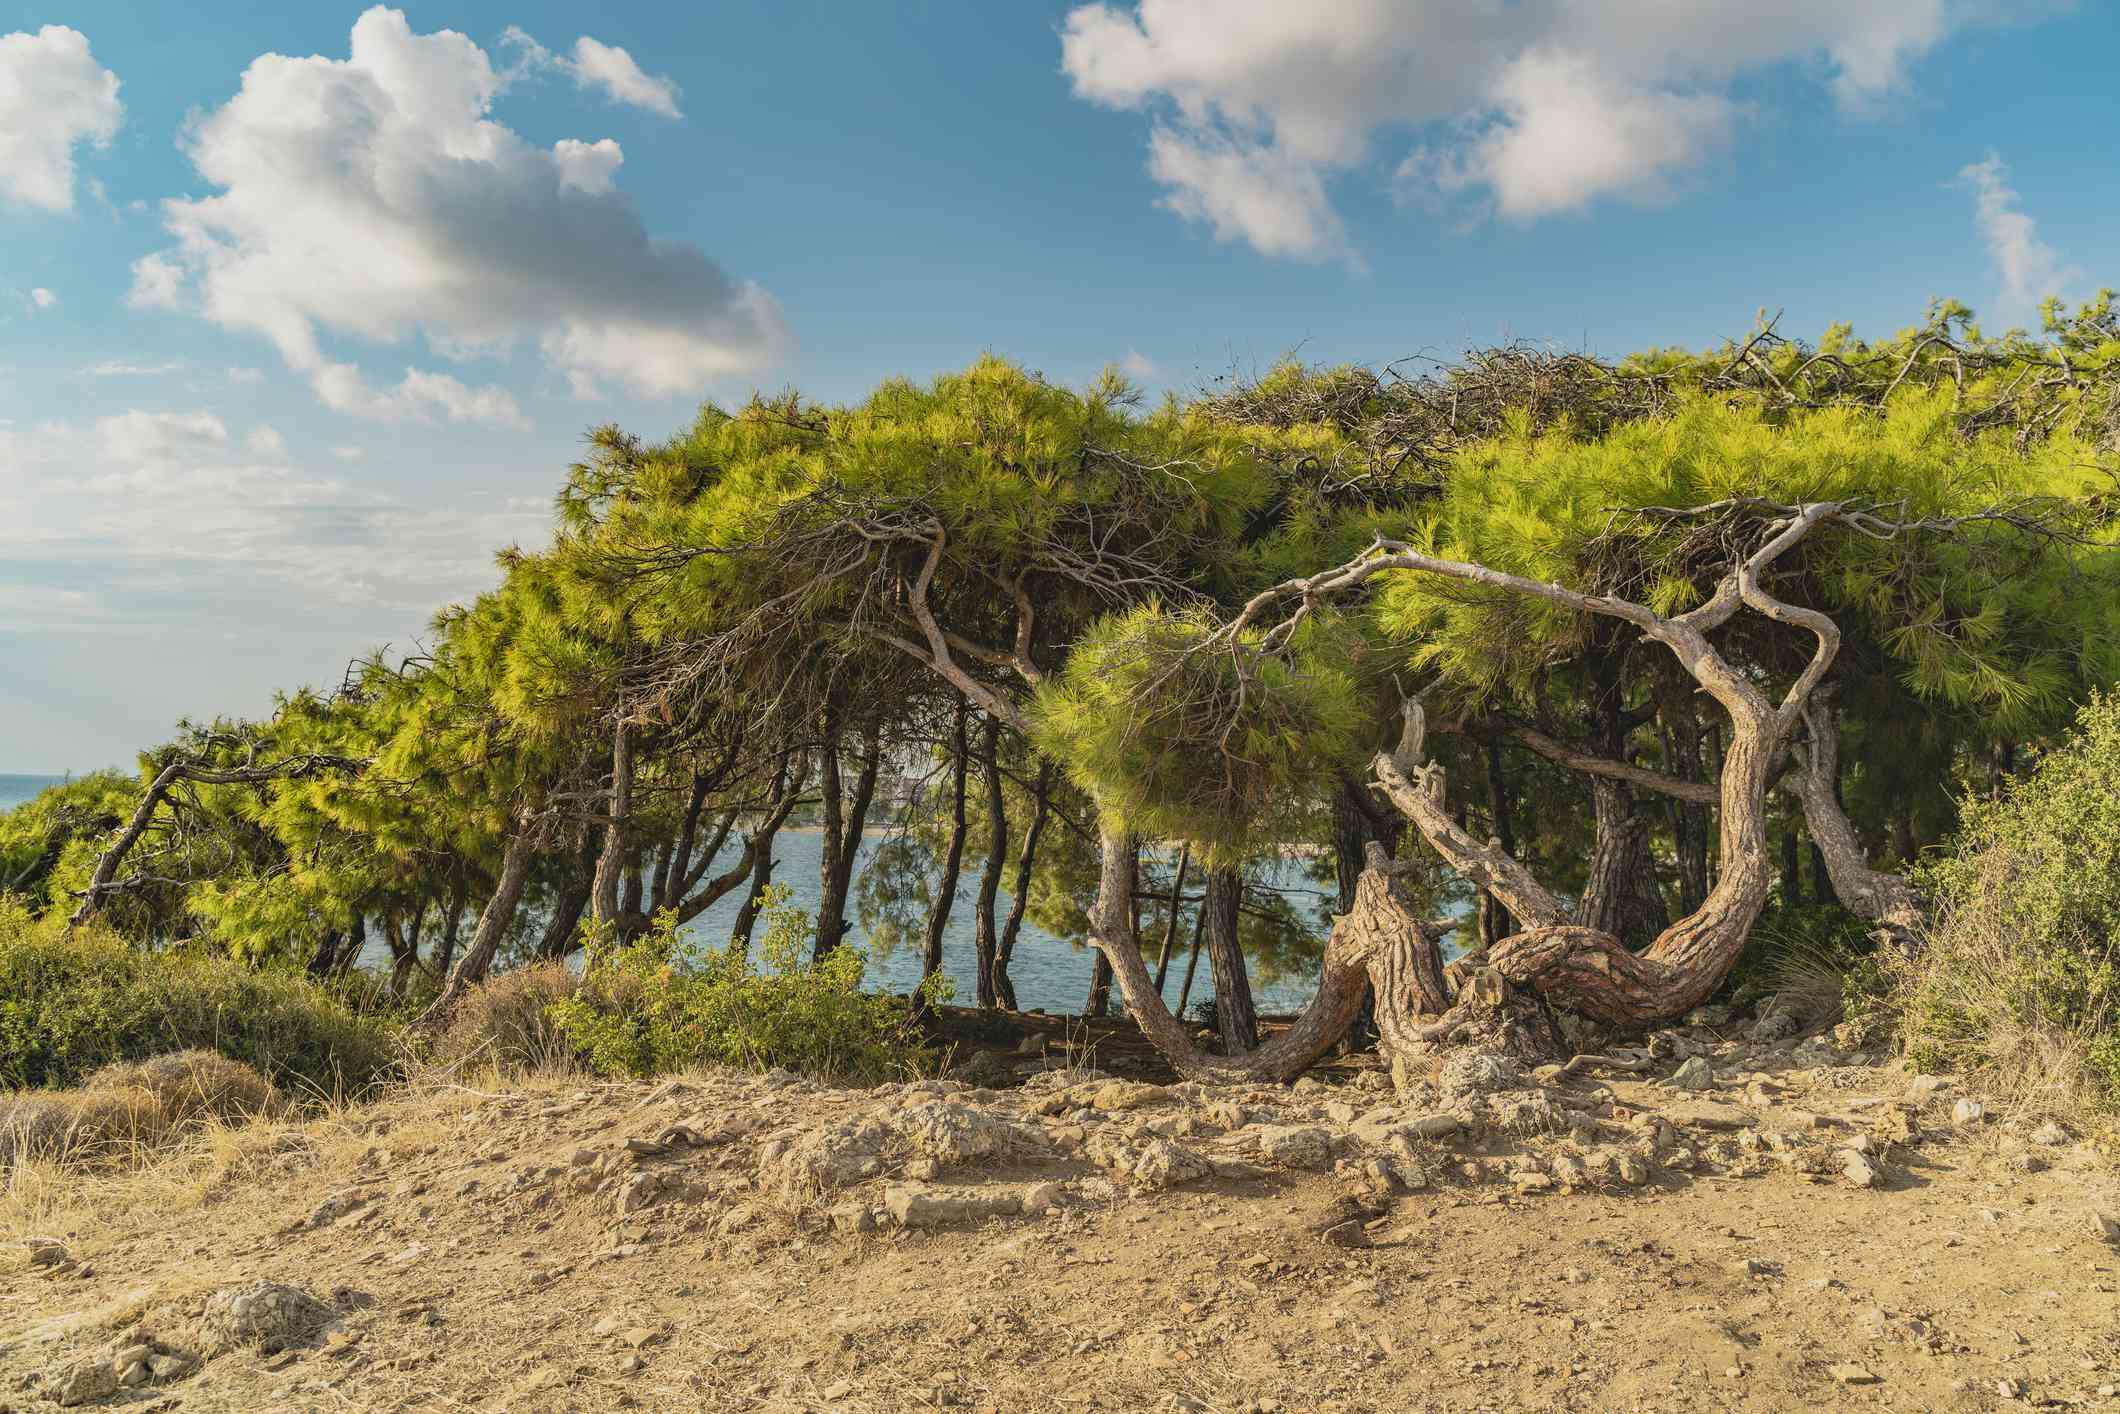 Beautiful landscape with turkish pine, sea on the background and nice blue sky with clouds. Green pinus brutia with flat crowns and crooked trunks look enormous.